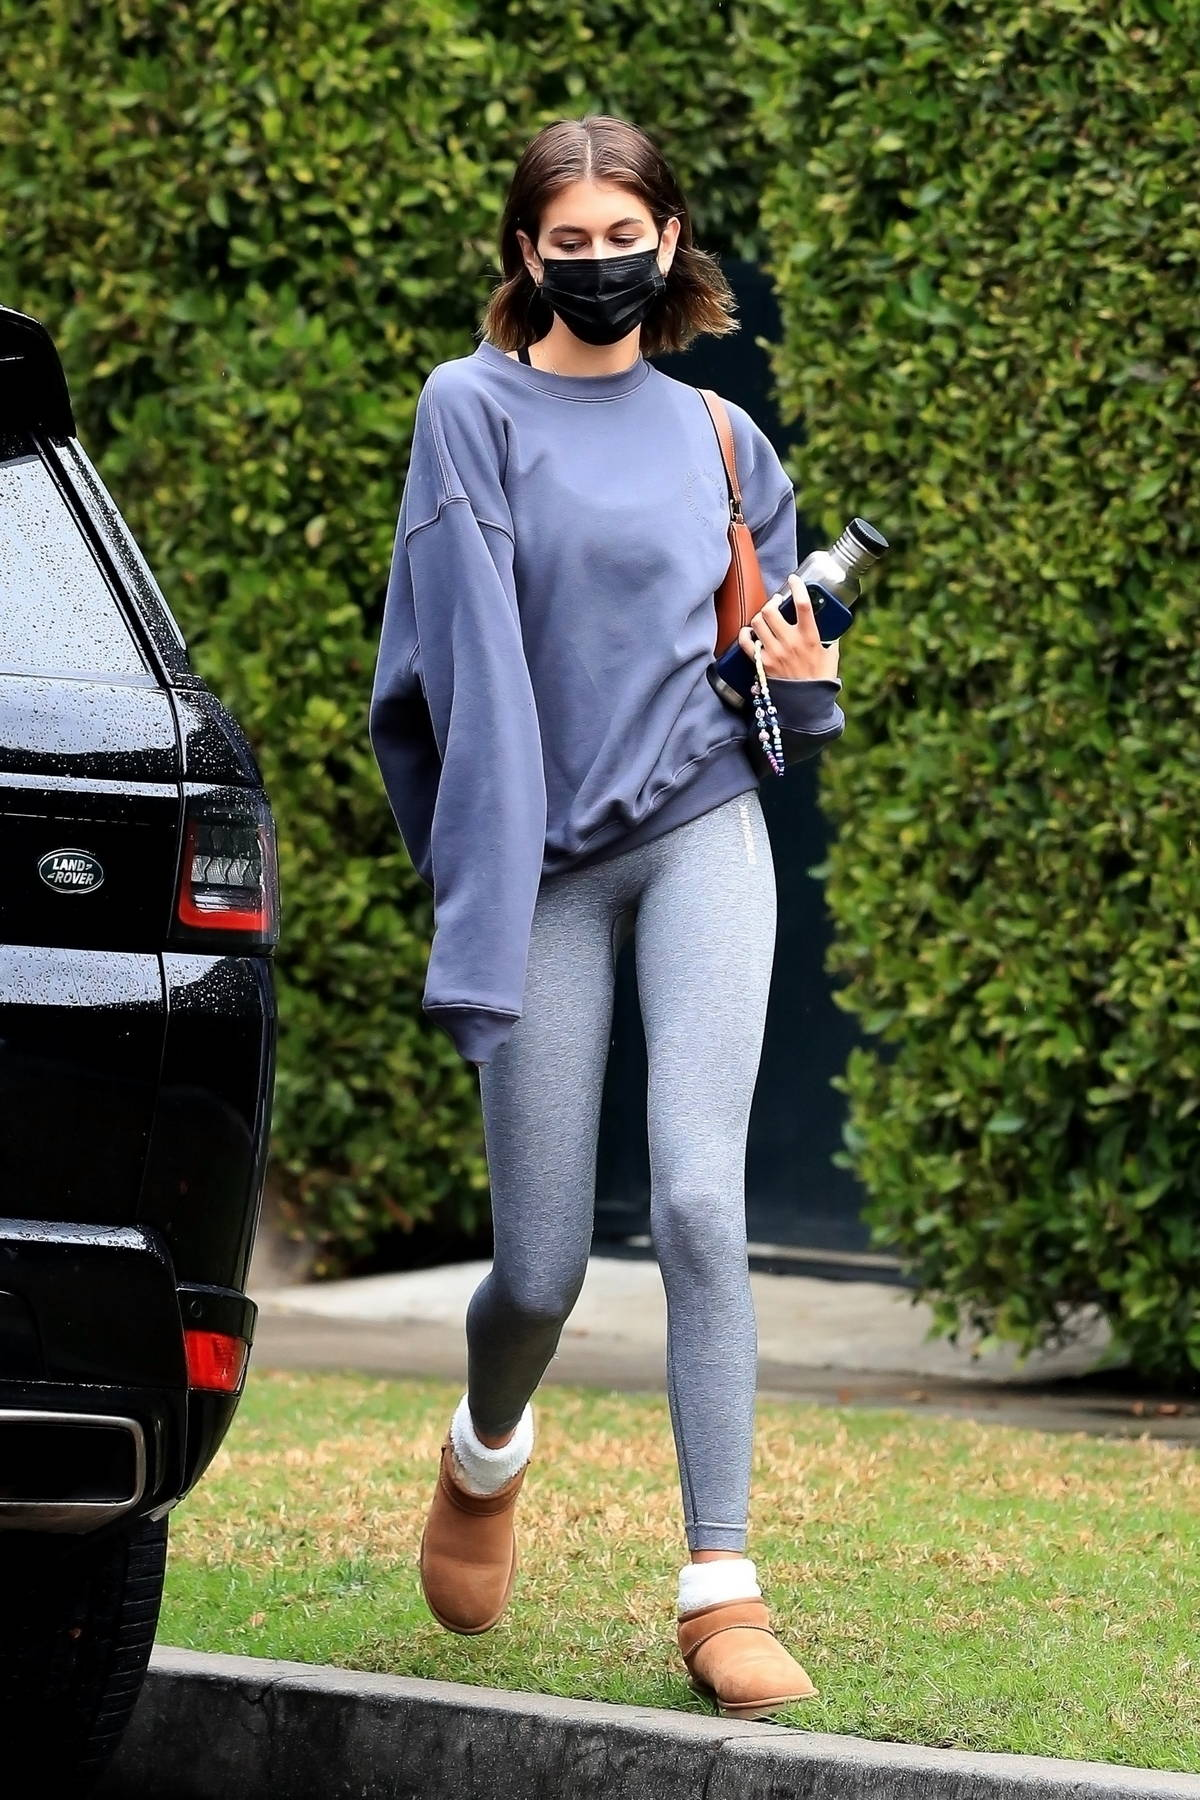 Kaia Gerber displays her slender legs in grey leggings as she leaves the gym in West Hollywood, California